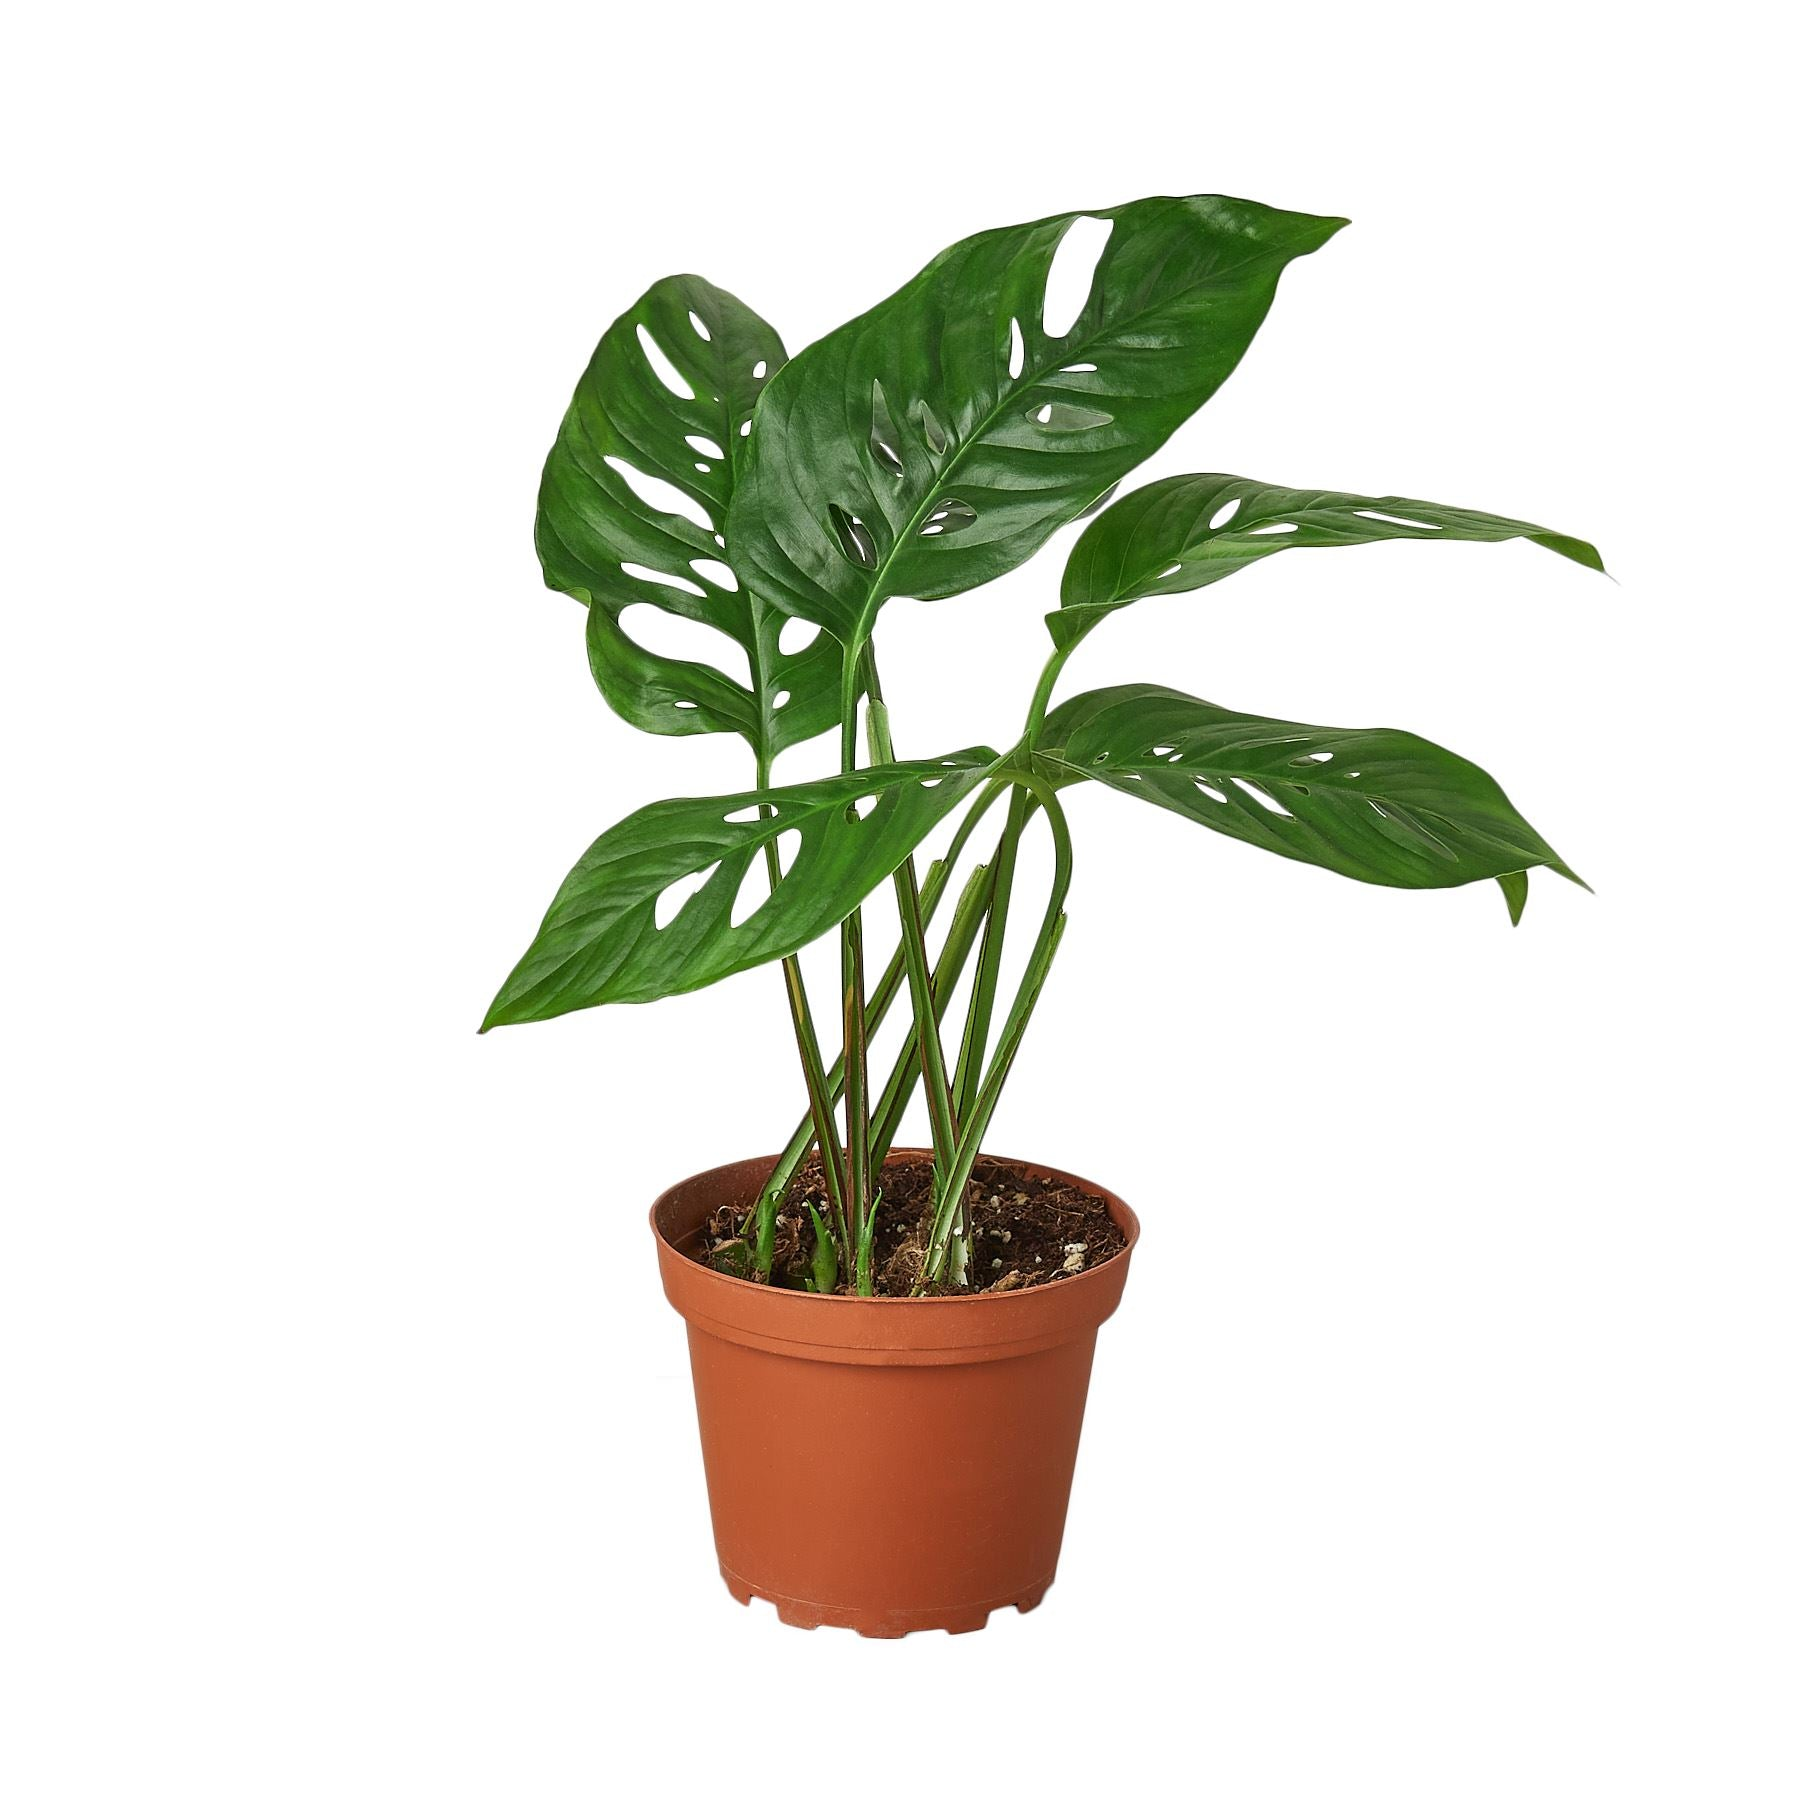 "Monstera Adansonii 'Swiss Cheese' 4"" Plant (1pk/$2) ($6 Ship/15oz) House Plant Shop"